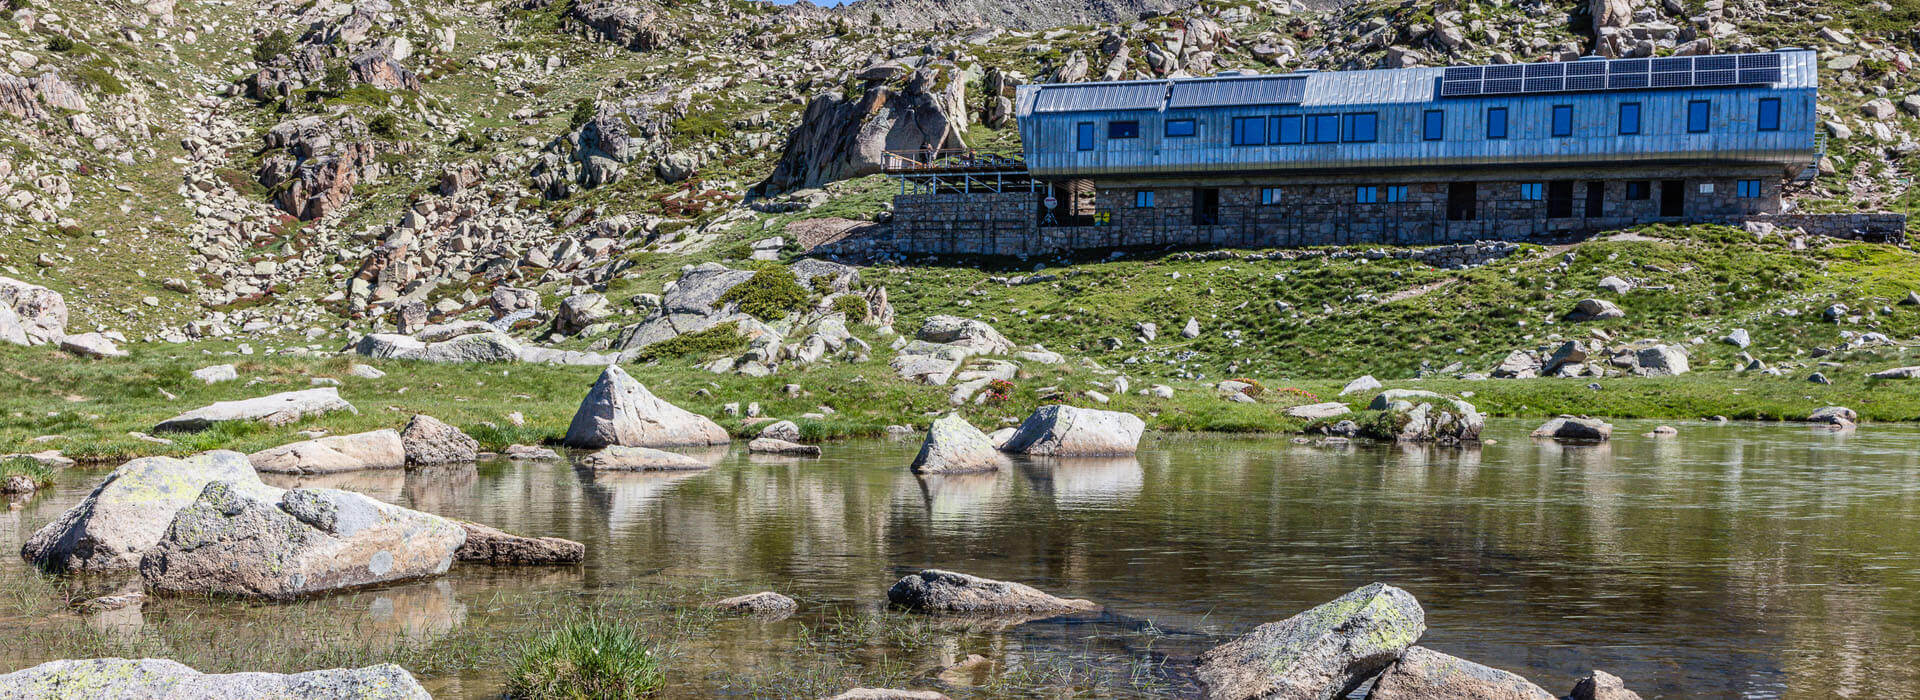 Refuge of the Illa Grandvalira Andorra